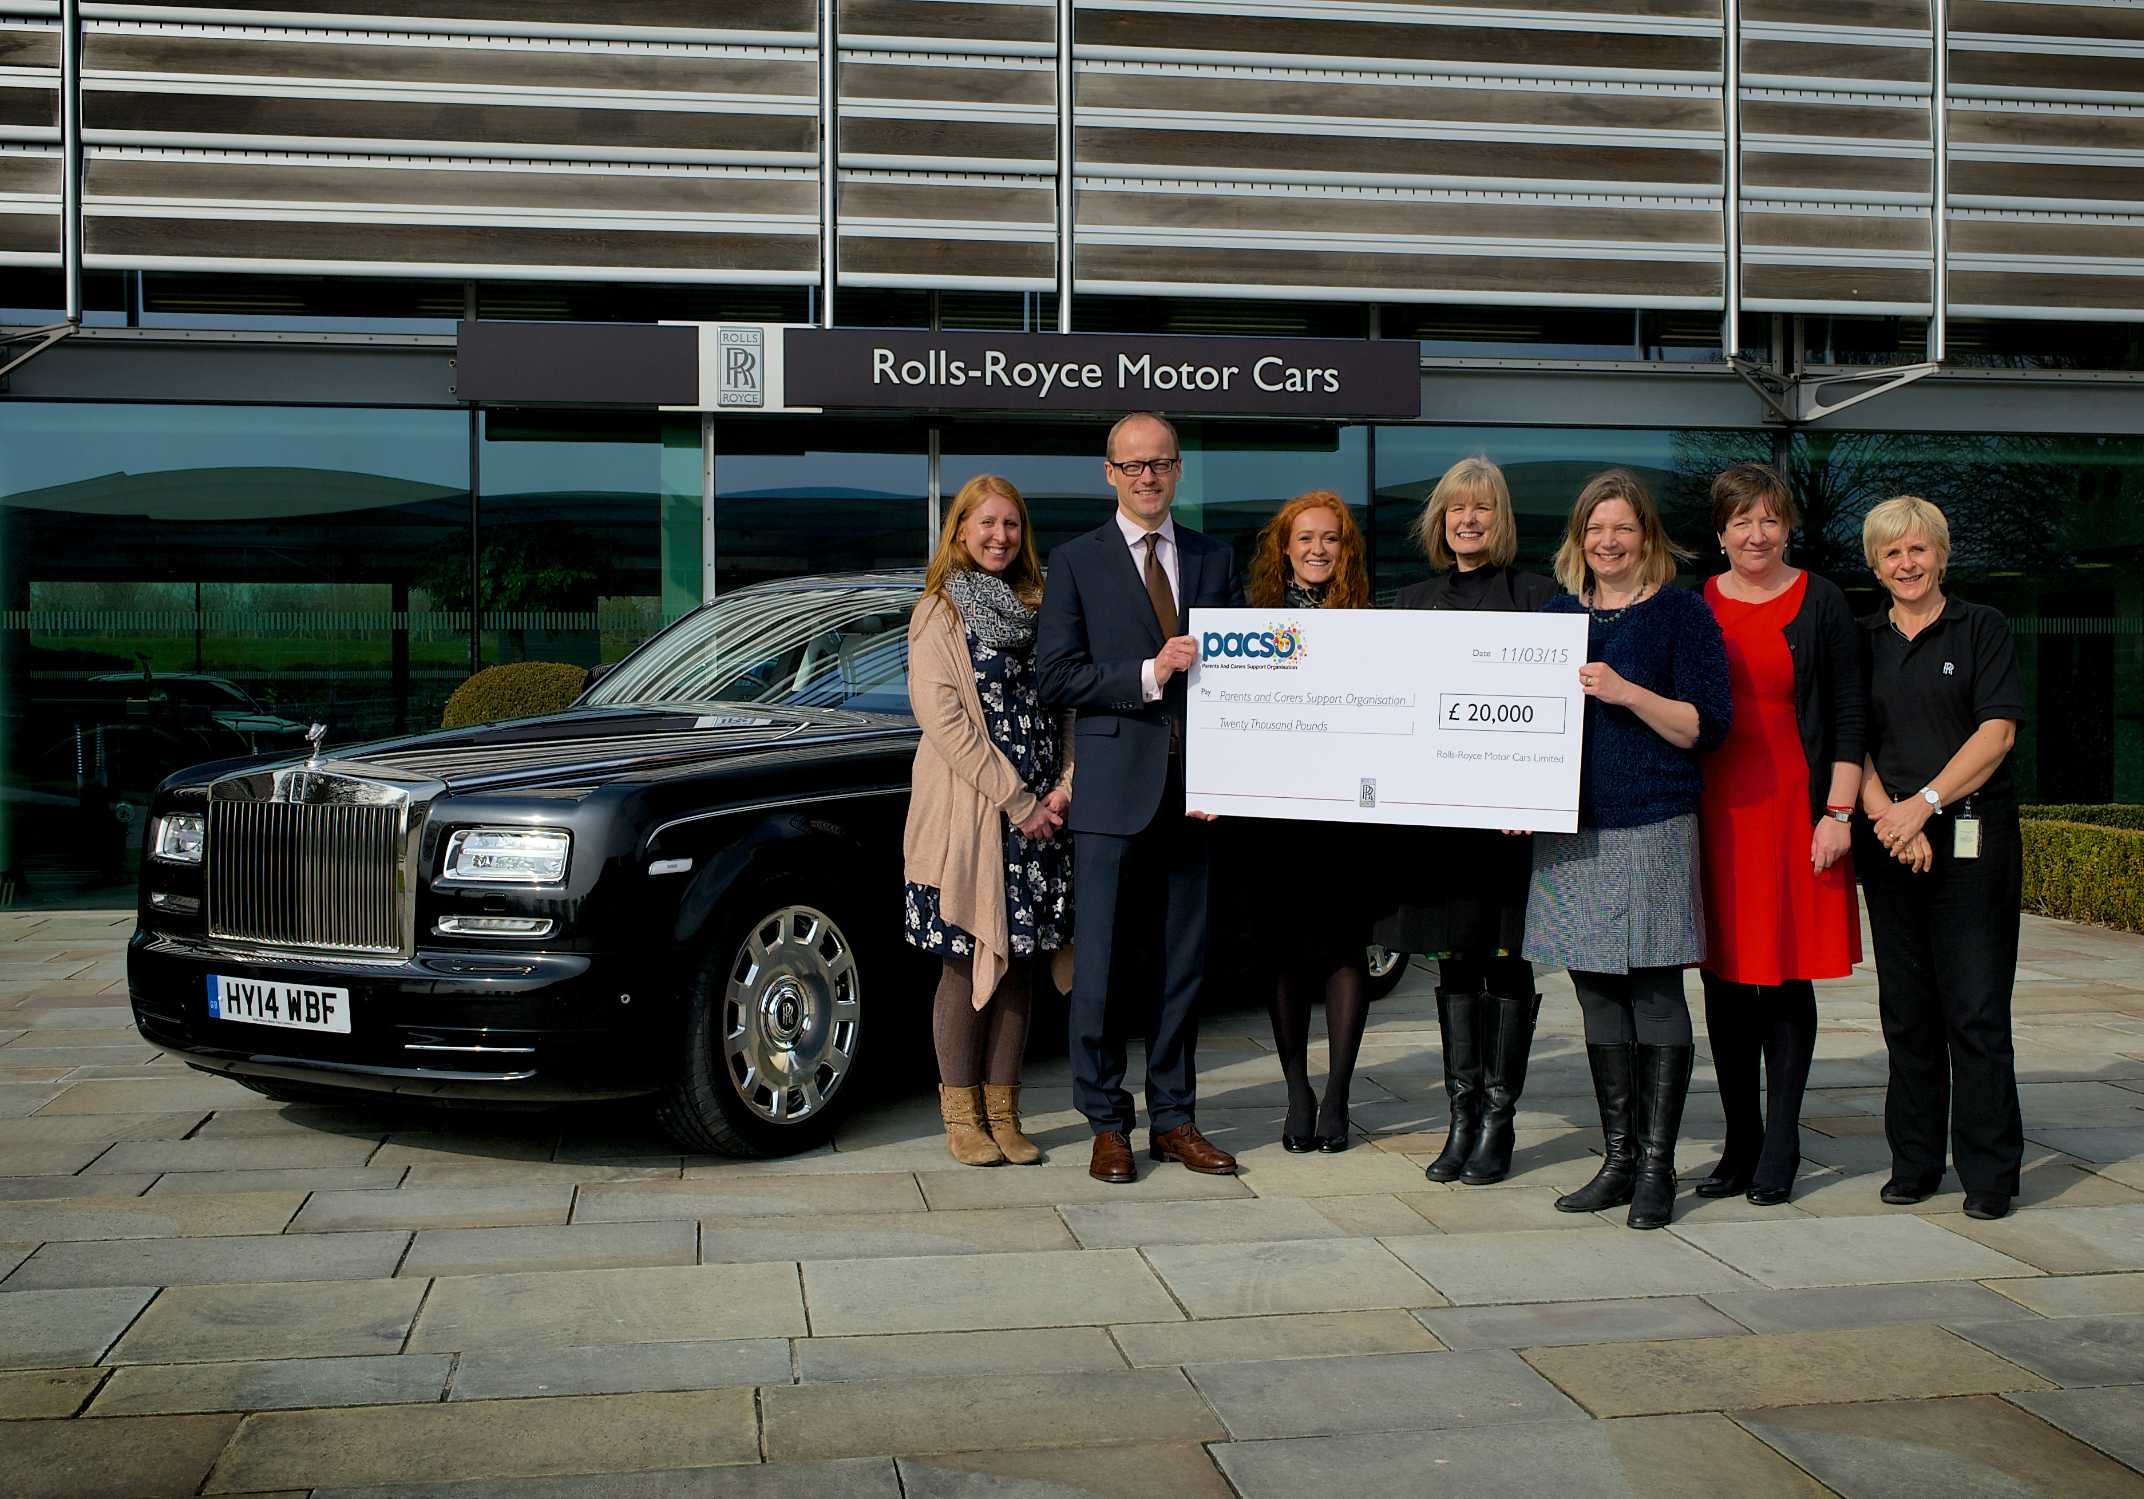 ROLLS ROYCE MOTOR CARS EMPLOYEES GO THE EXTRA MILE FOR LOCAL CHARITY